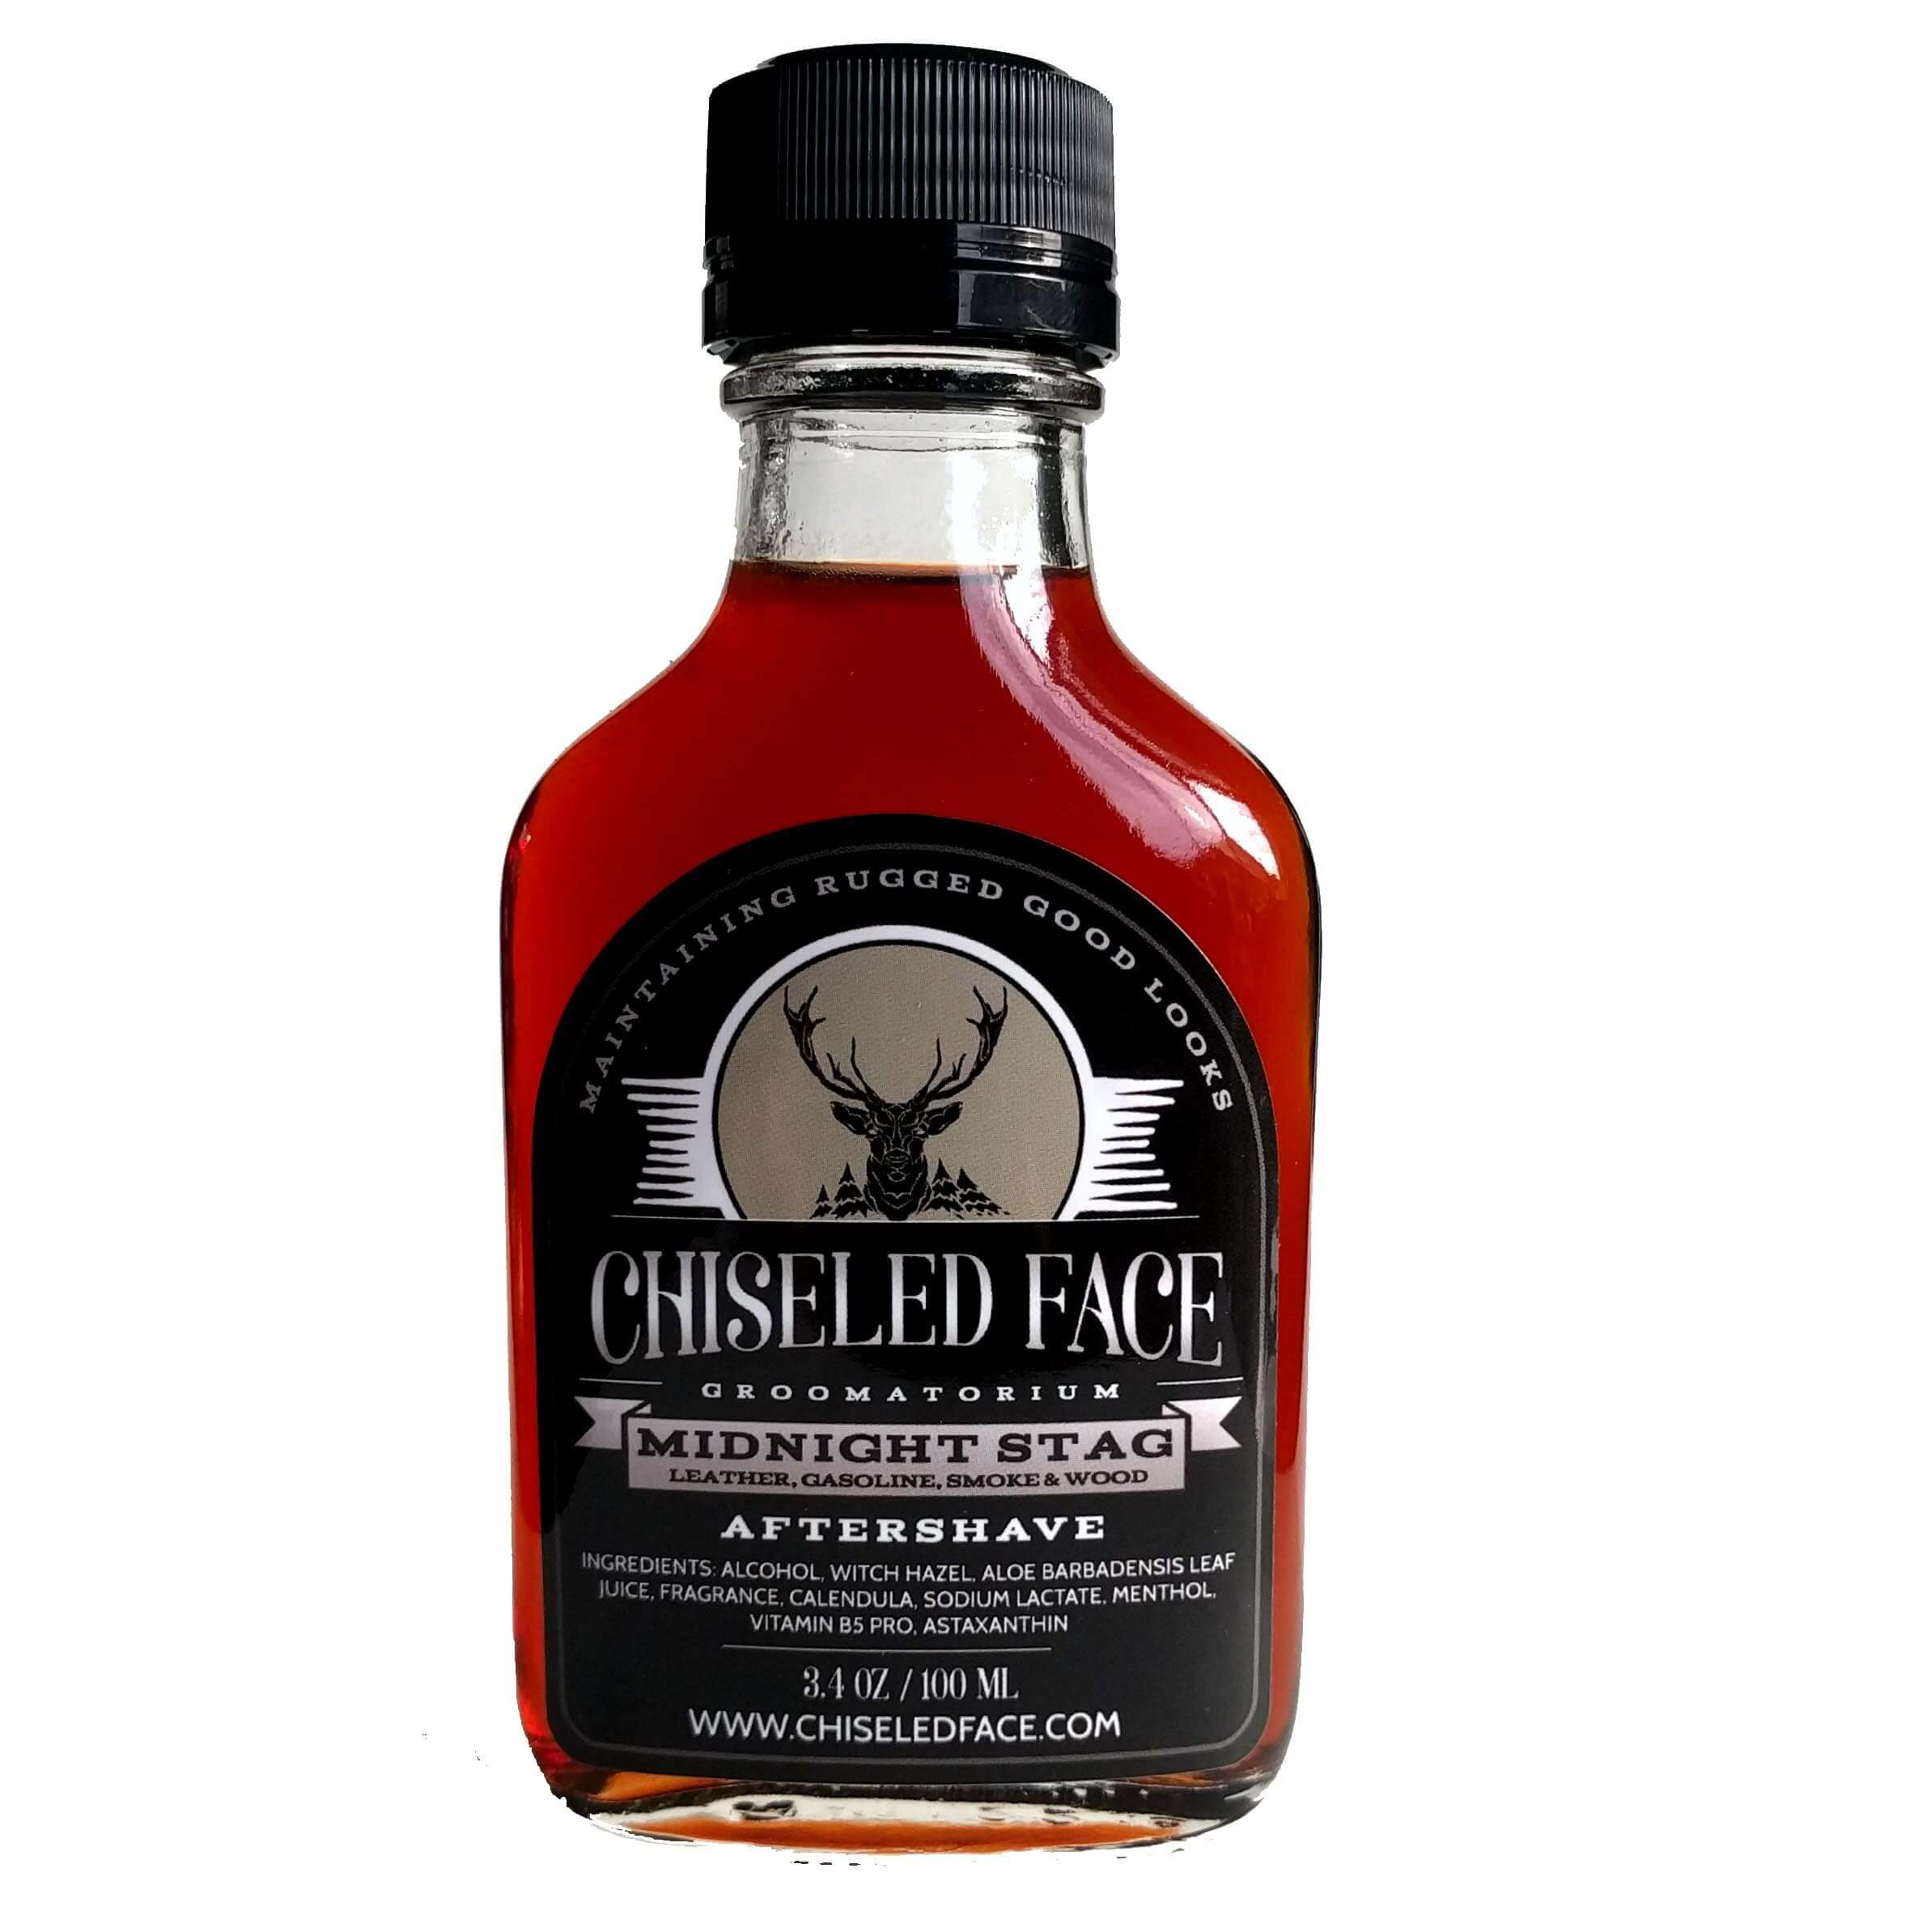 Chiseled Face - Midnight Stag - Aftershave image